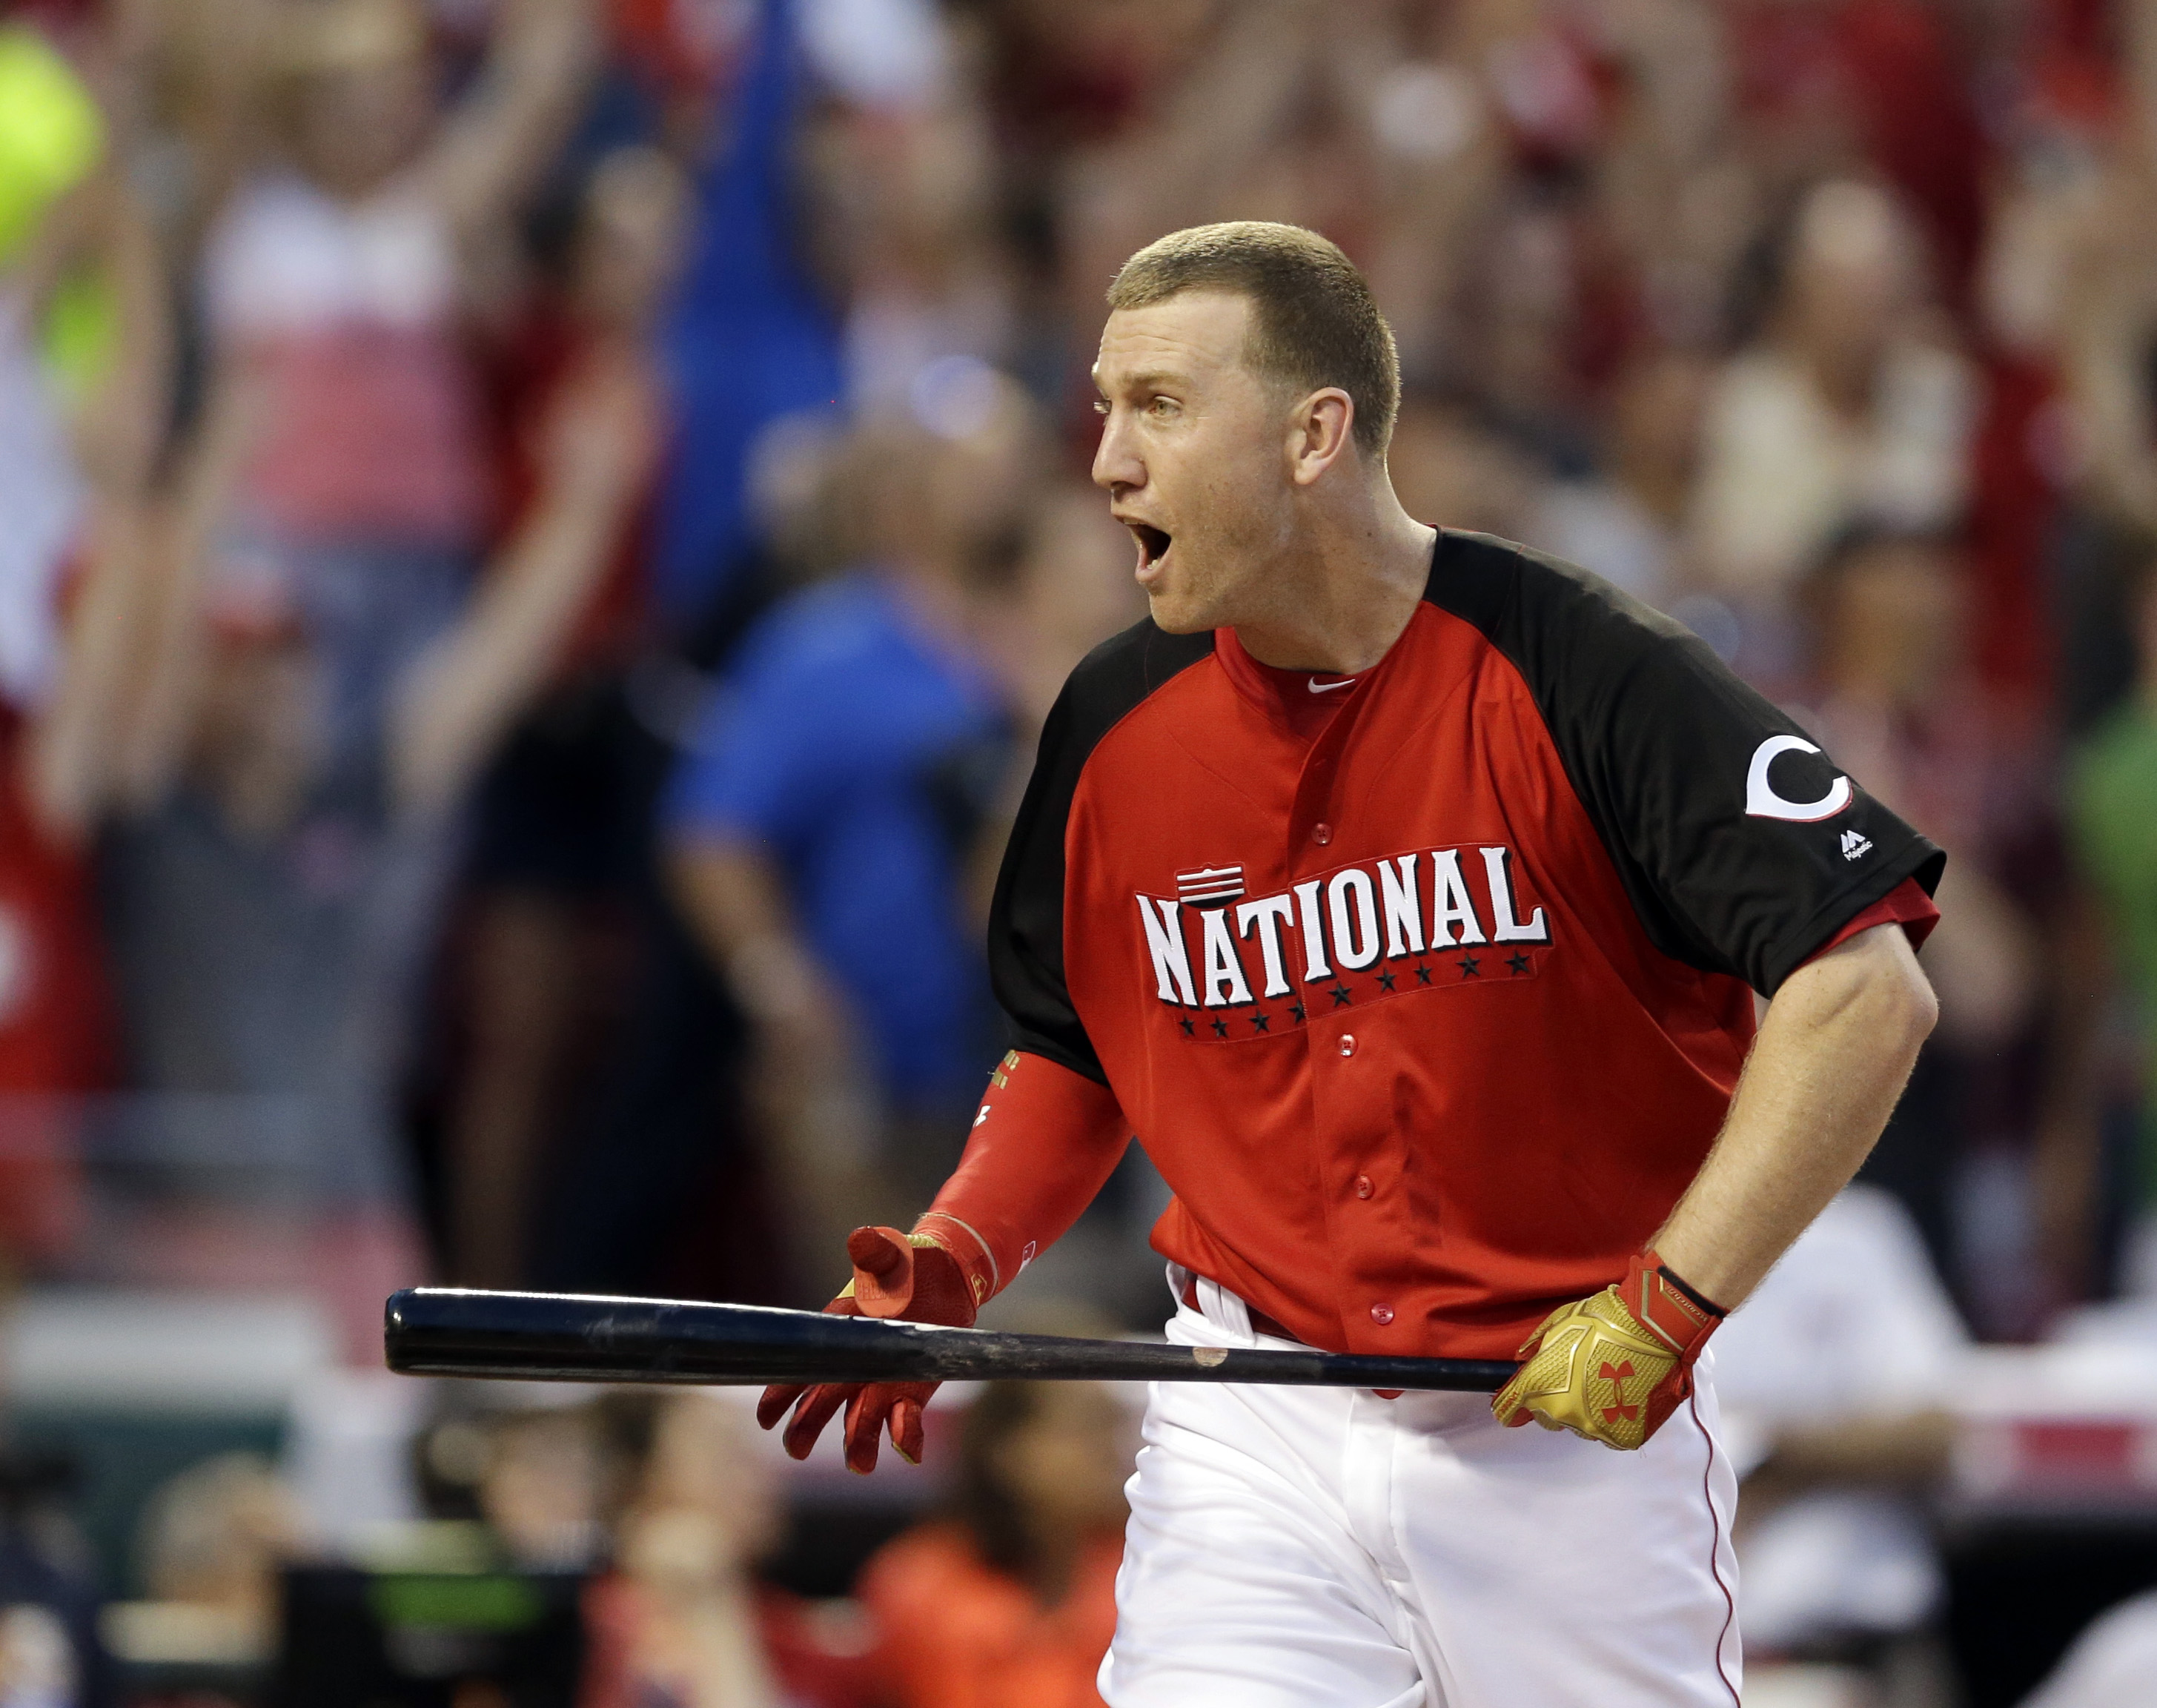 Todd Frazier of the  Cincinnati Reds reacts during the Home Run Derby in Cincinnati on July 13, 2015